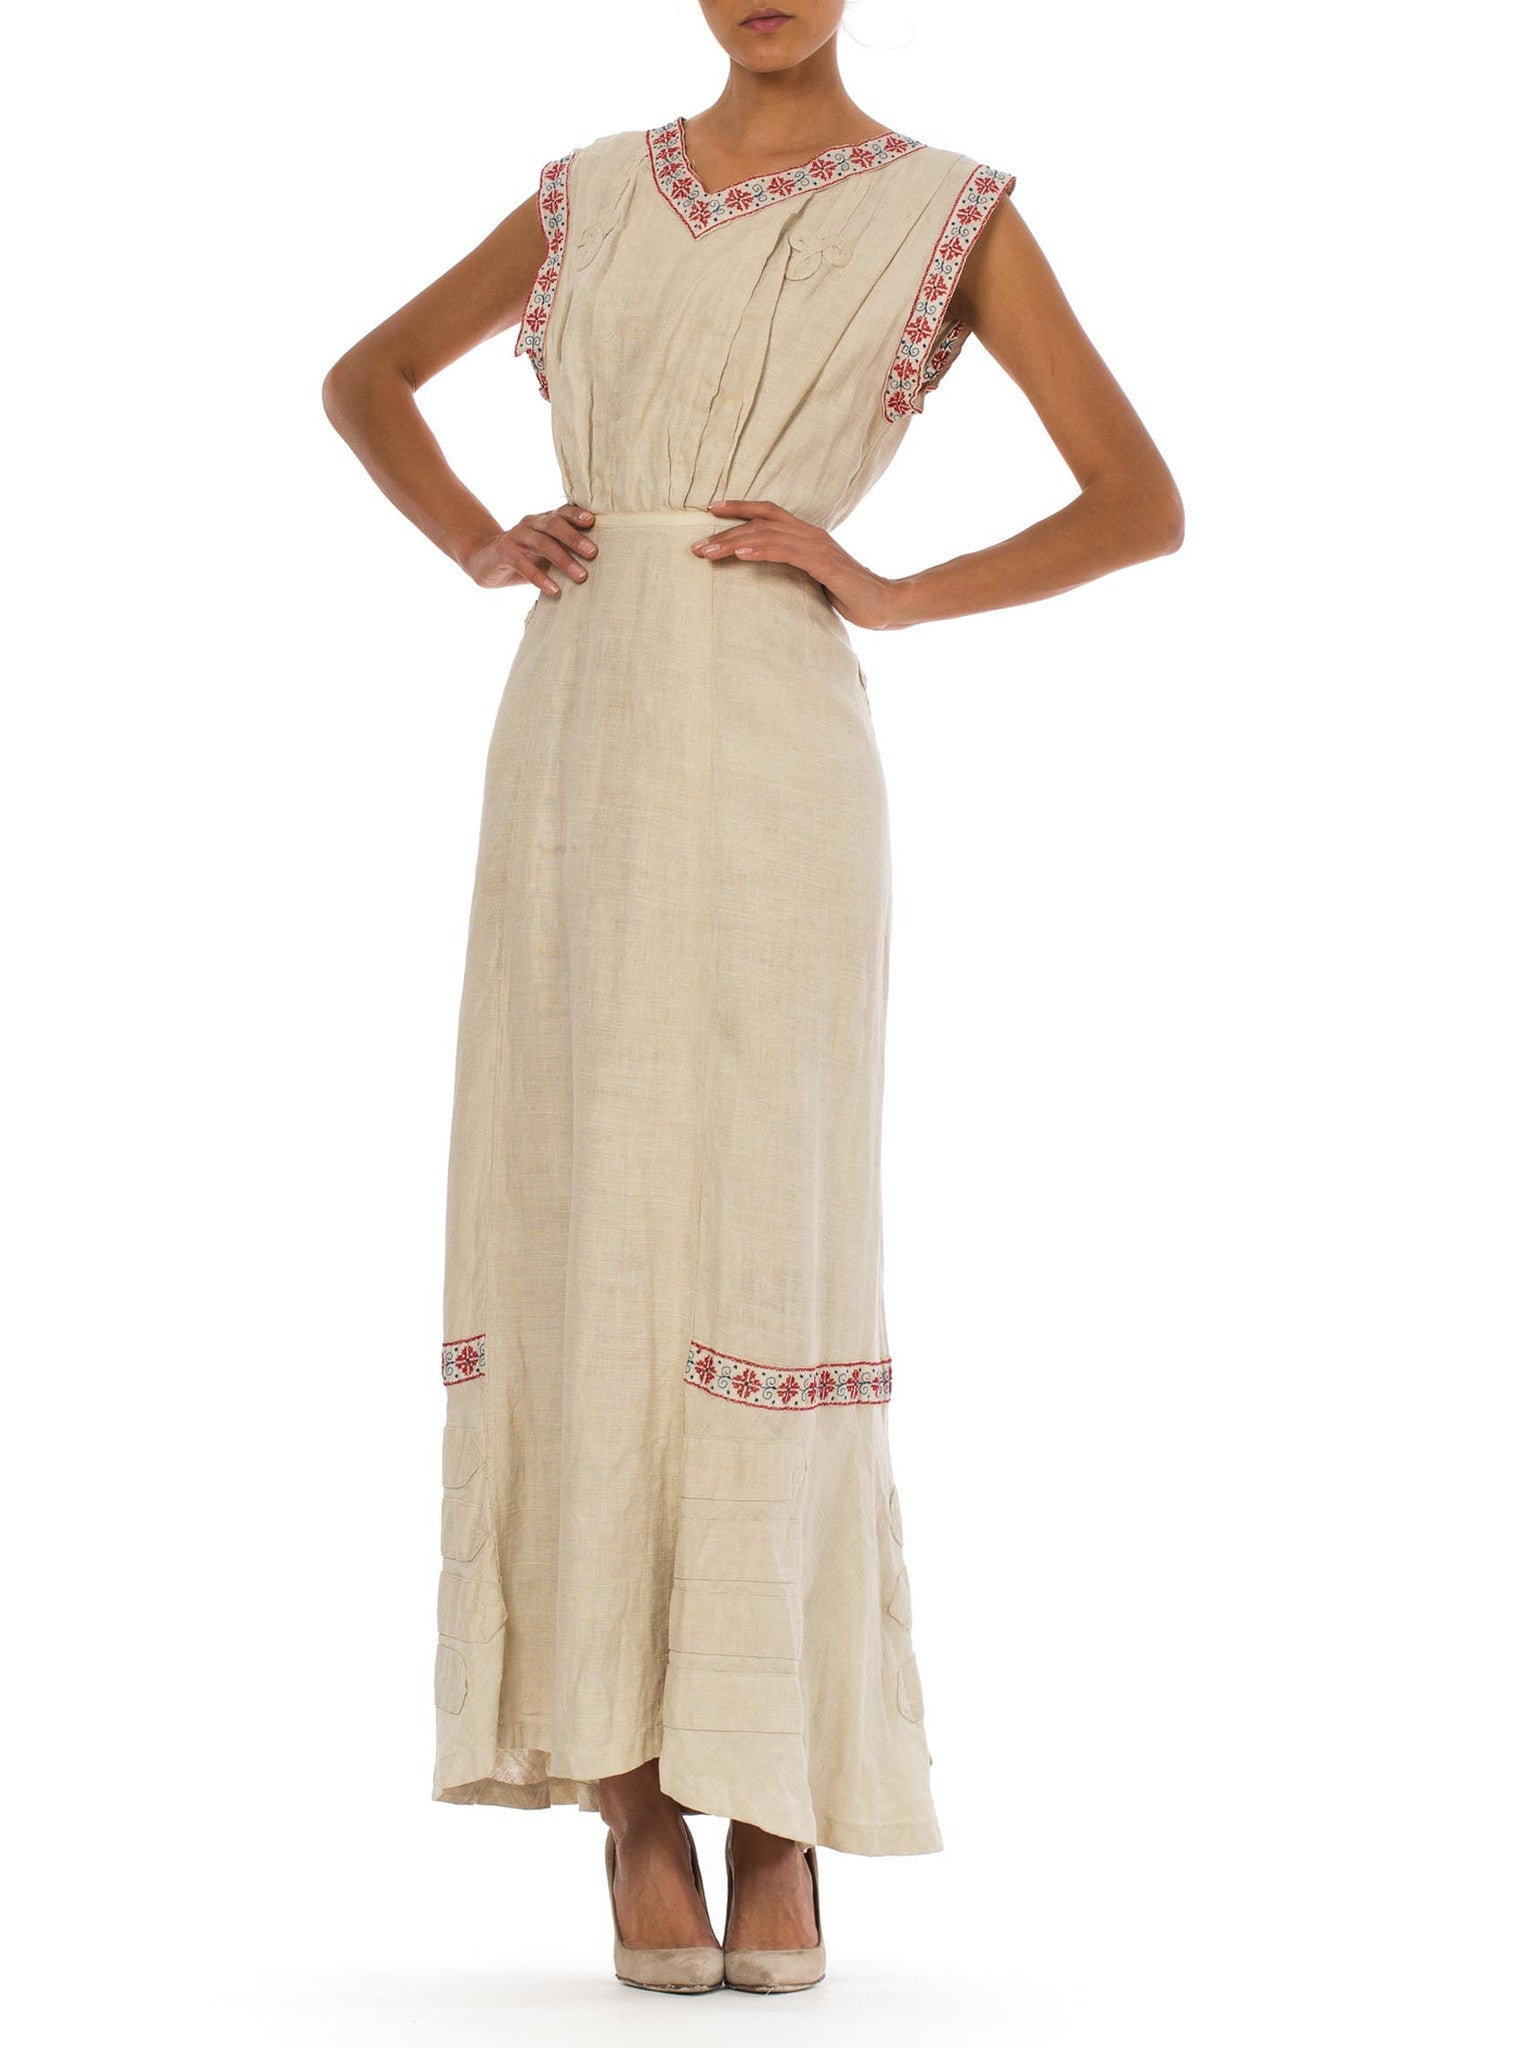 Edwardian Beige Linen Walking Dress With Bias Cut Train & Red Folk Embroidery